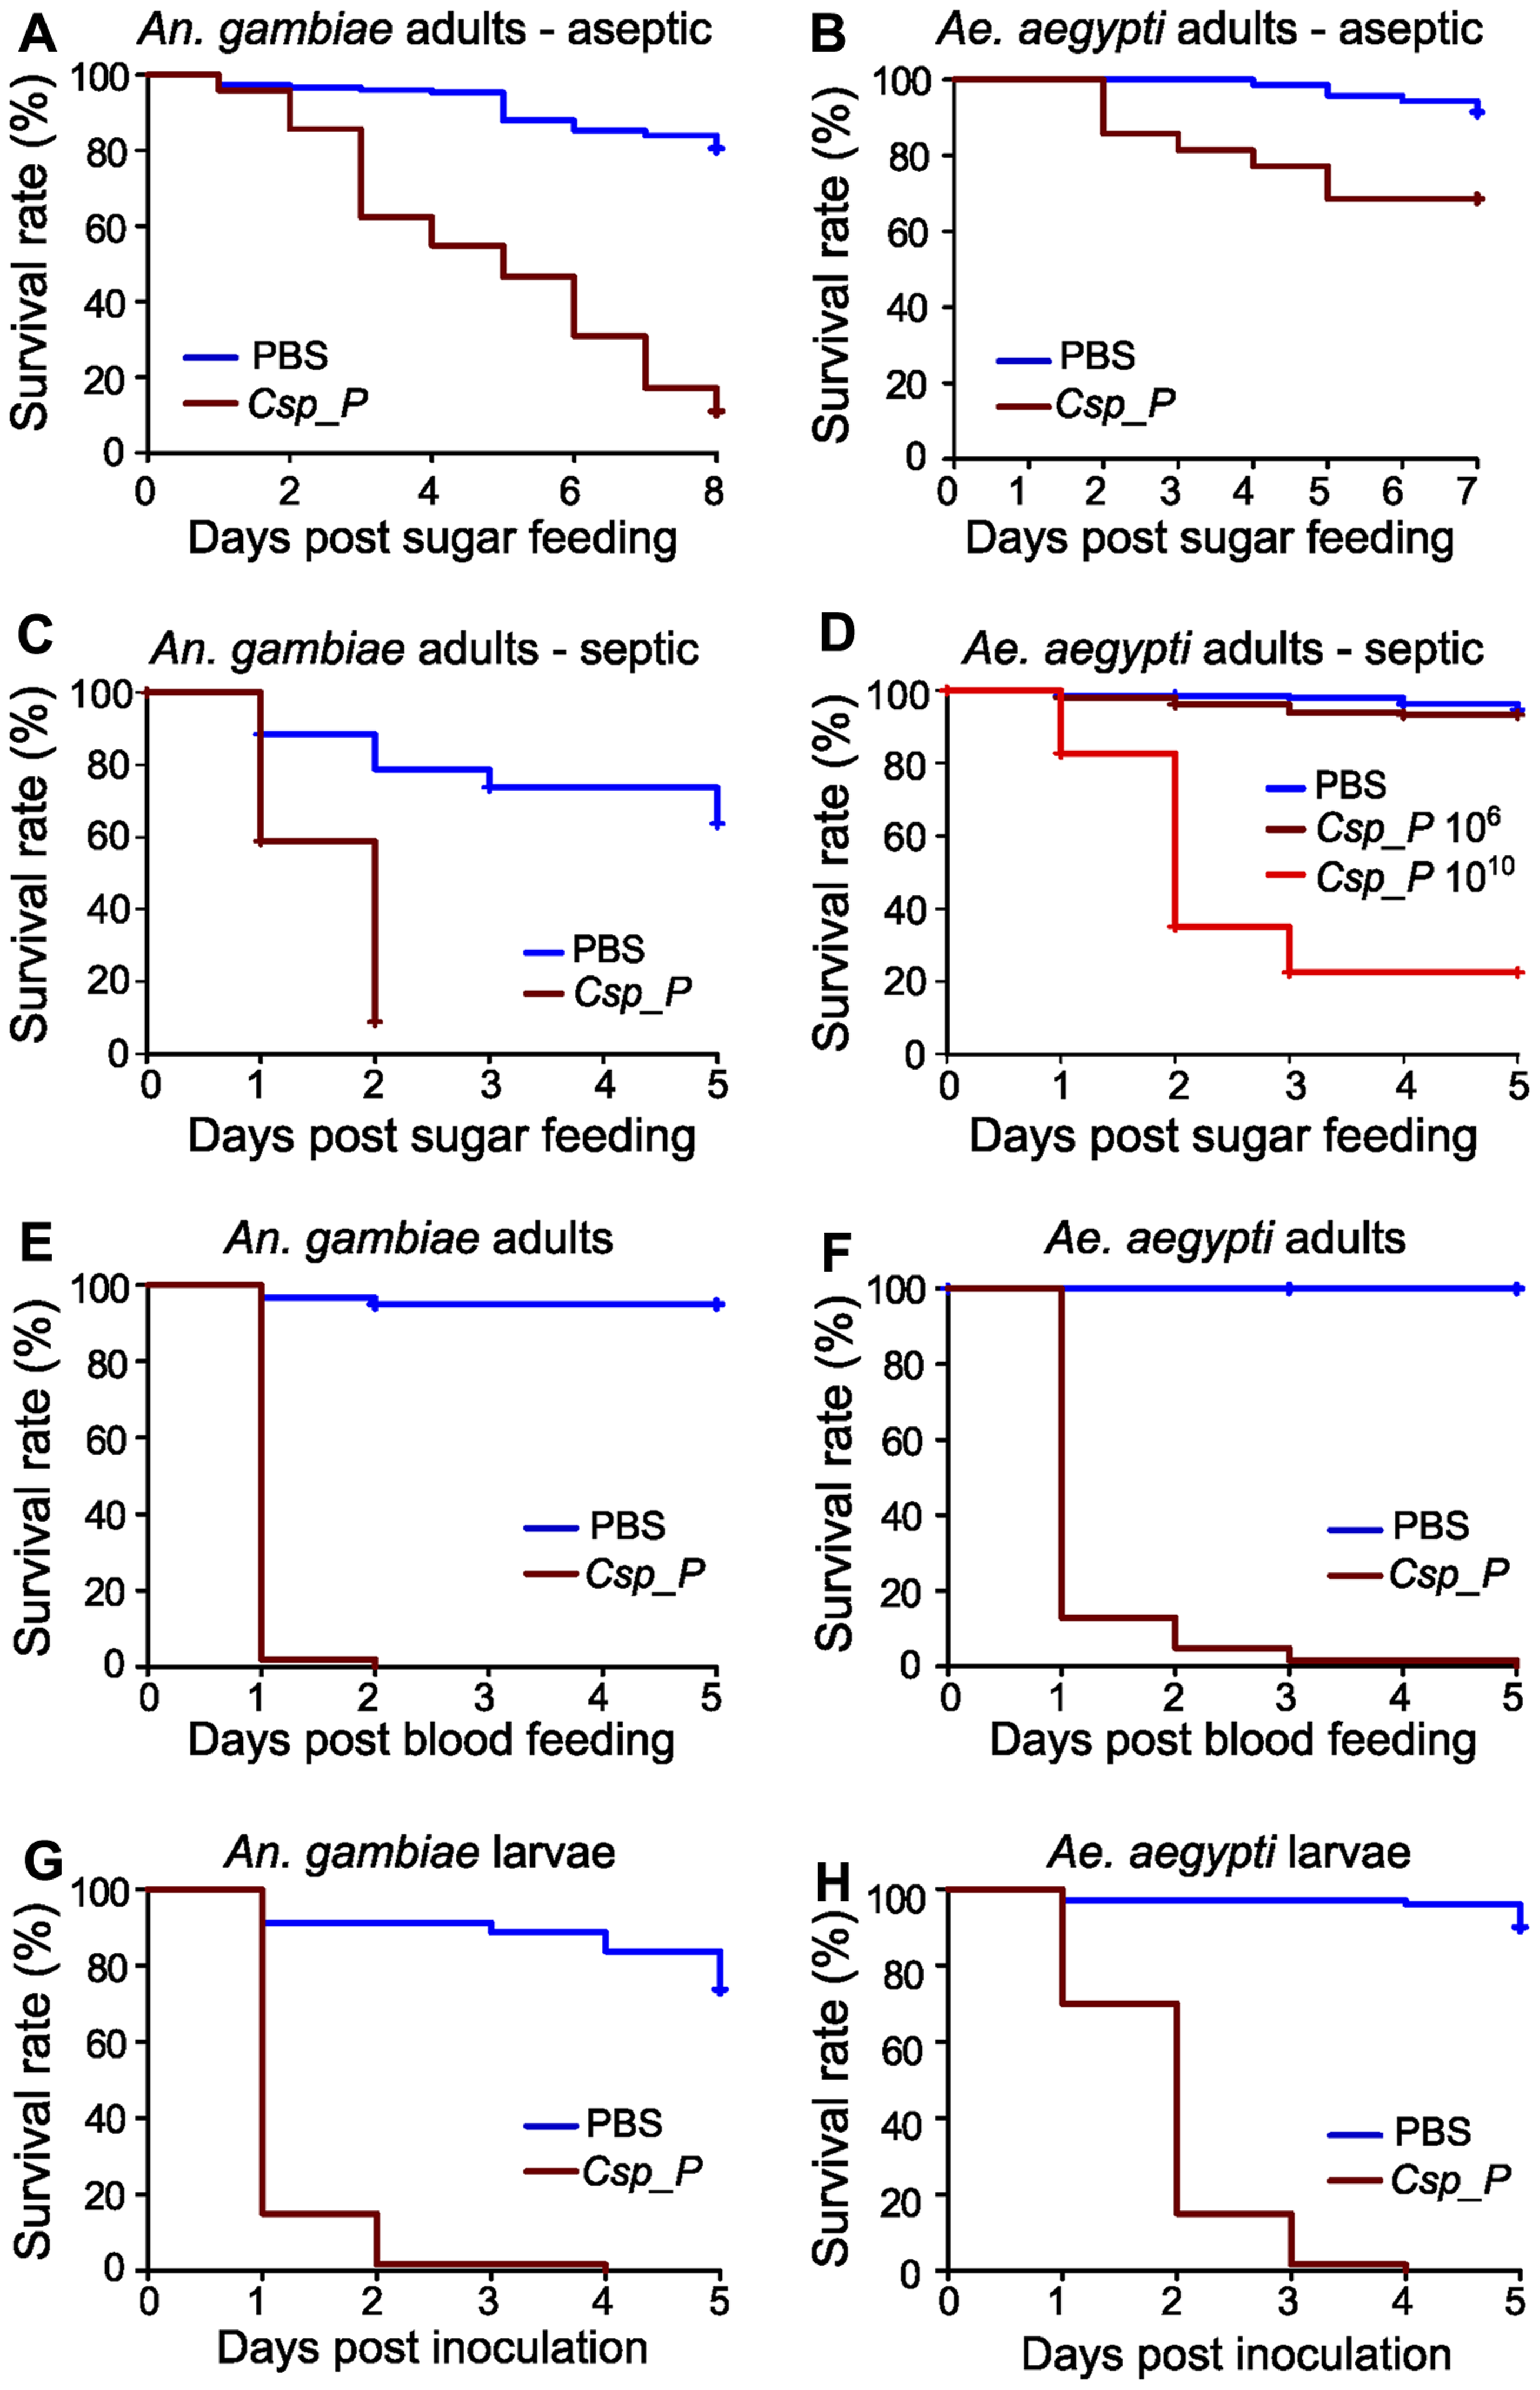 <i>Csp_P</i> exposure causes high mortality in adults and larvae.